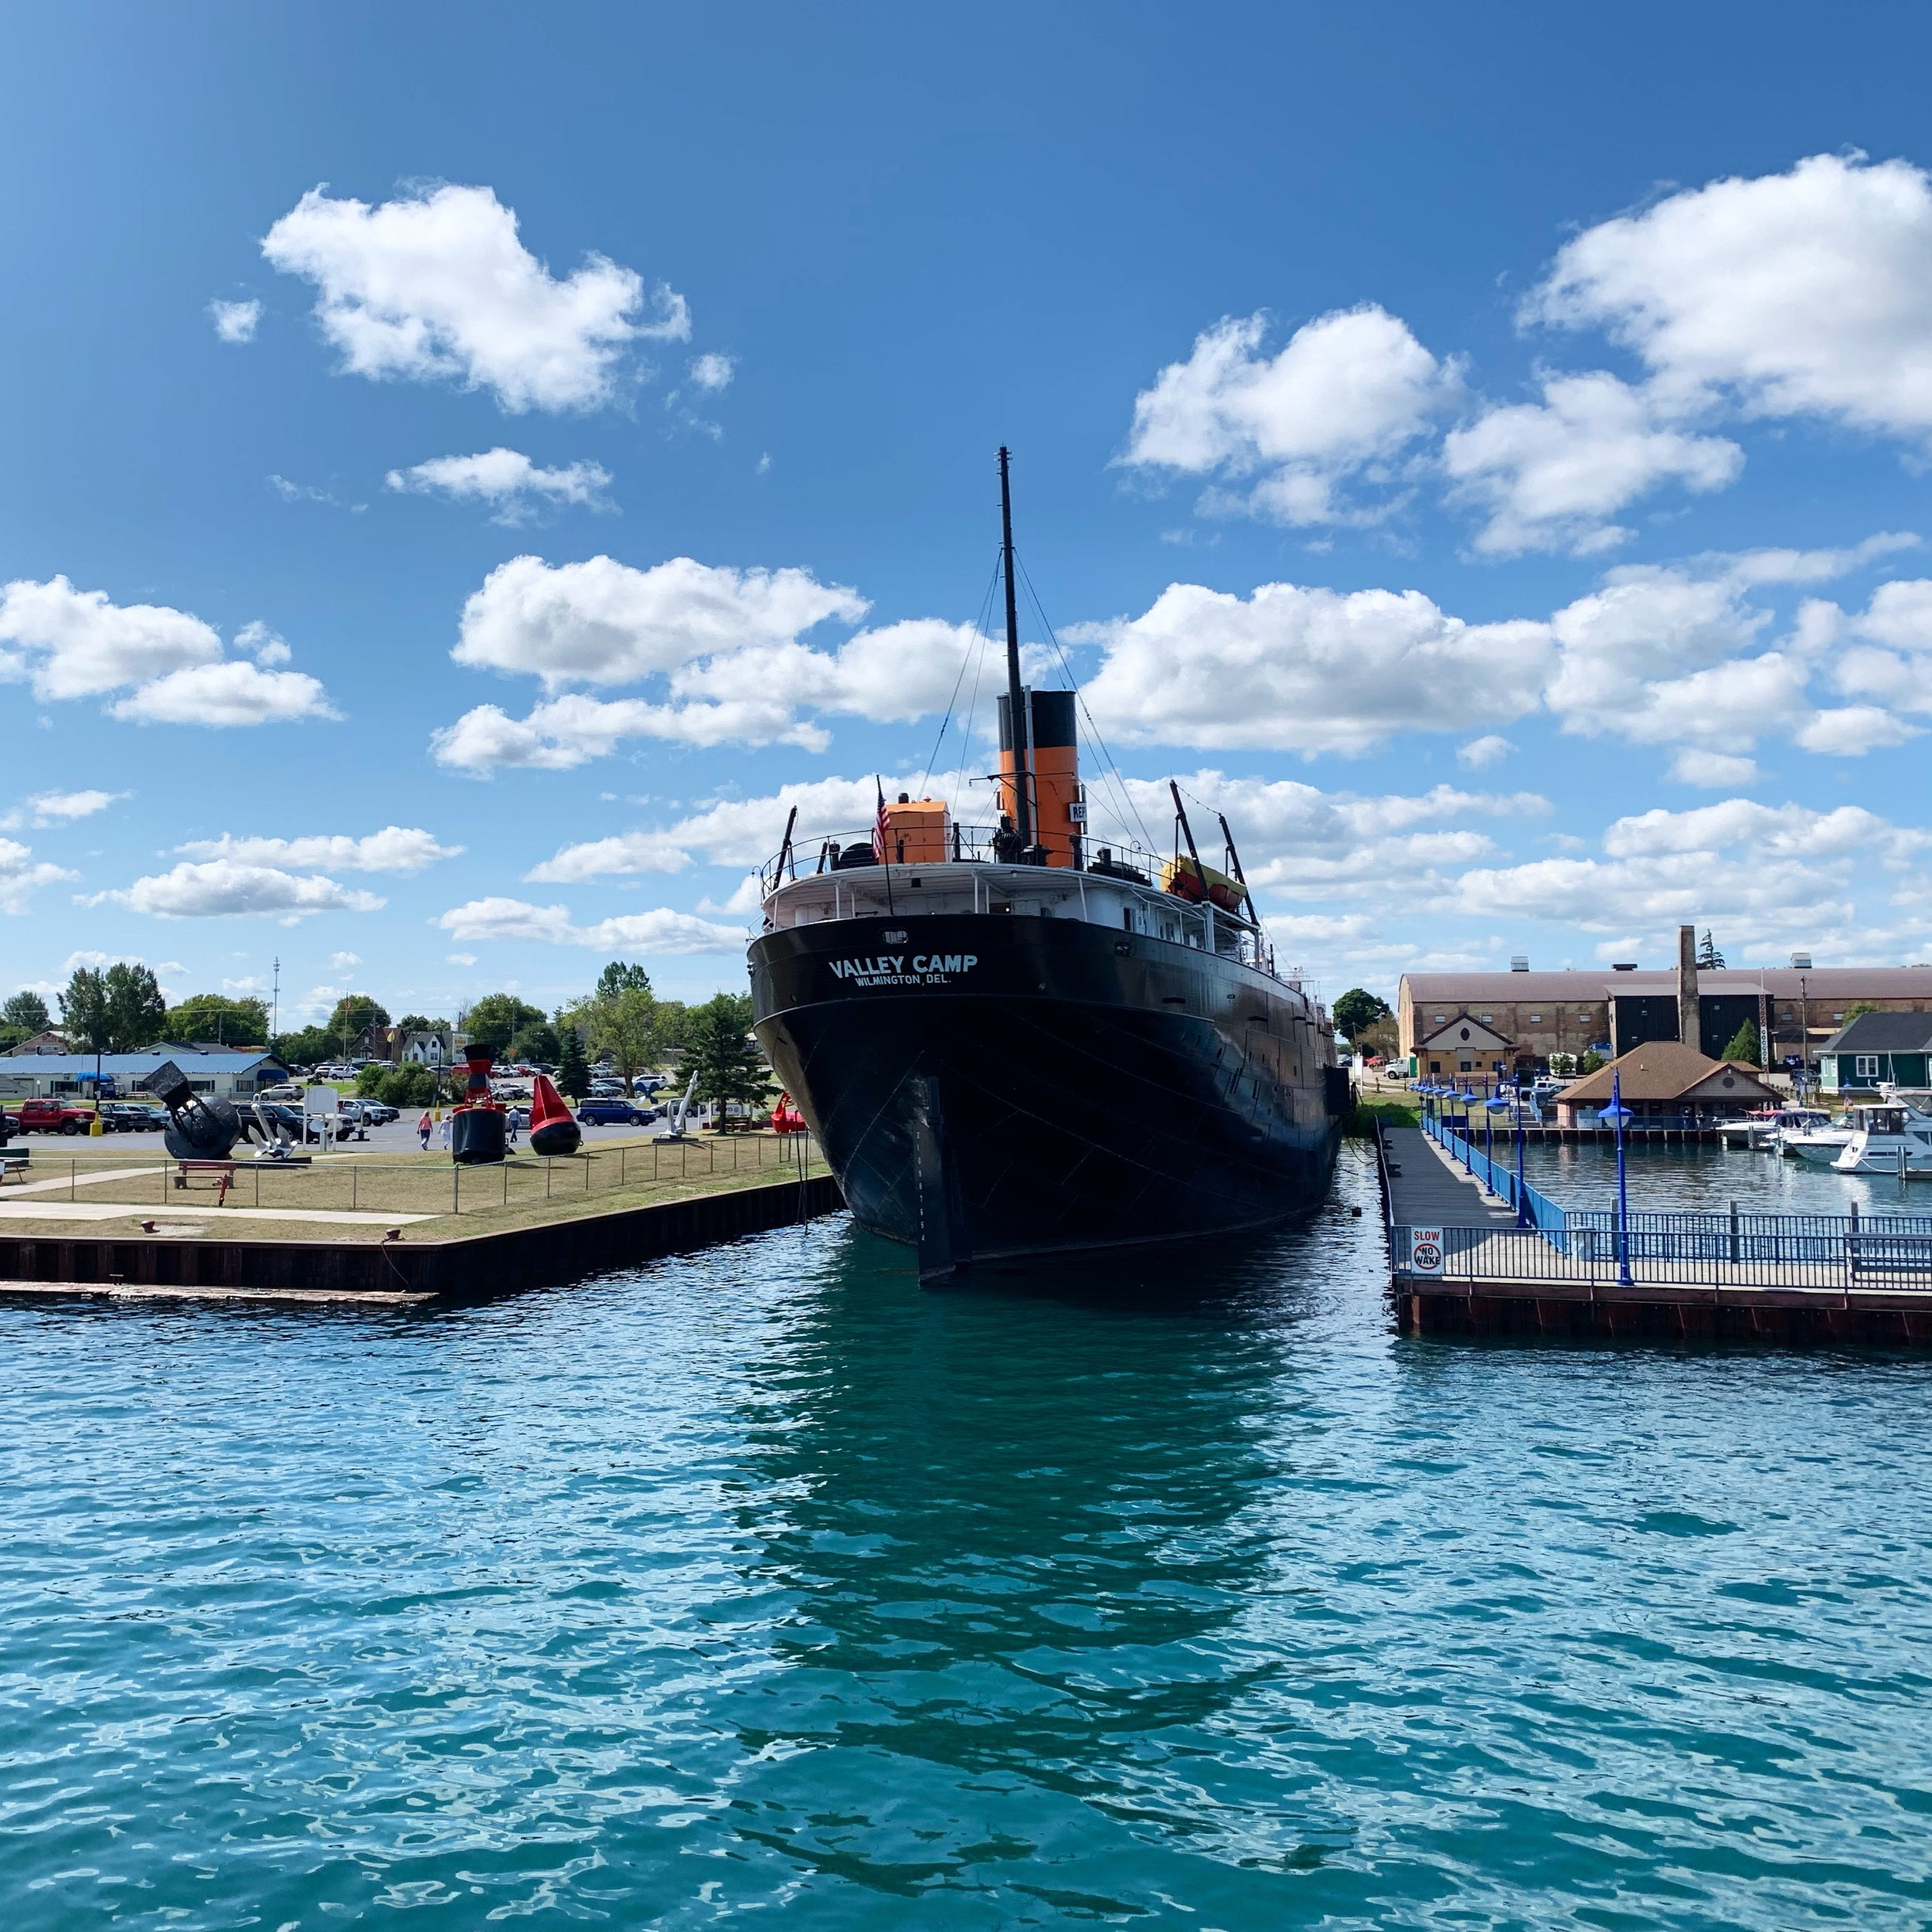 In service on the Great Lakes until the middle of the 20th century, the Valley Camp now serves as a floating museum